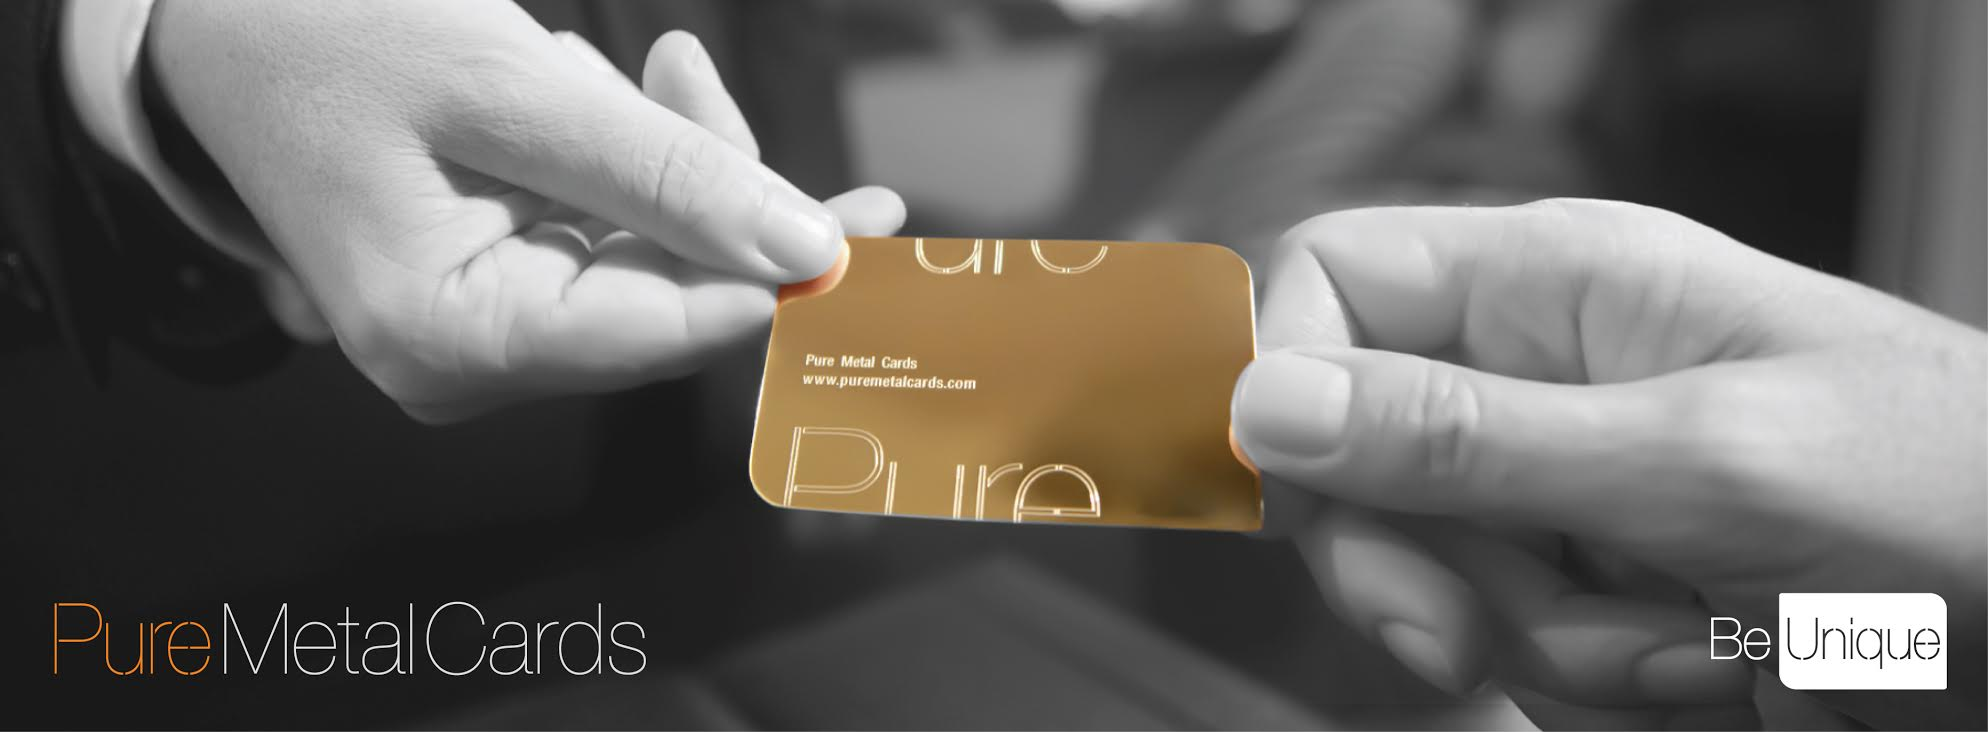 Business Cards - A Powerful Marketing And Communication Tool ...